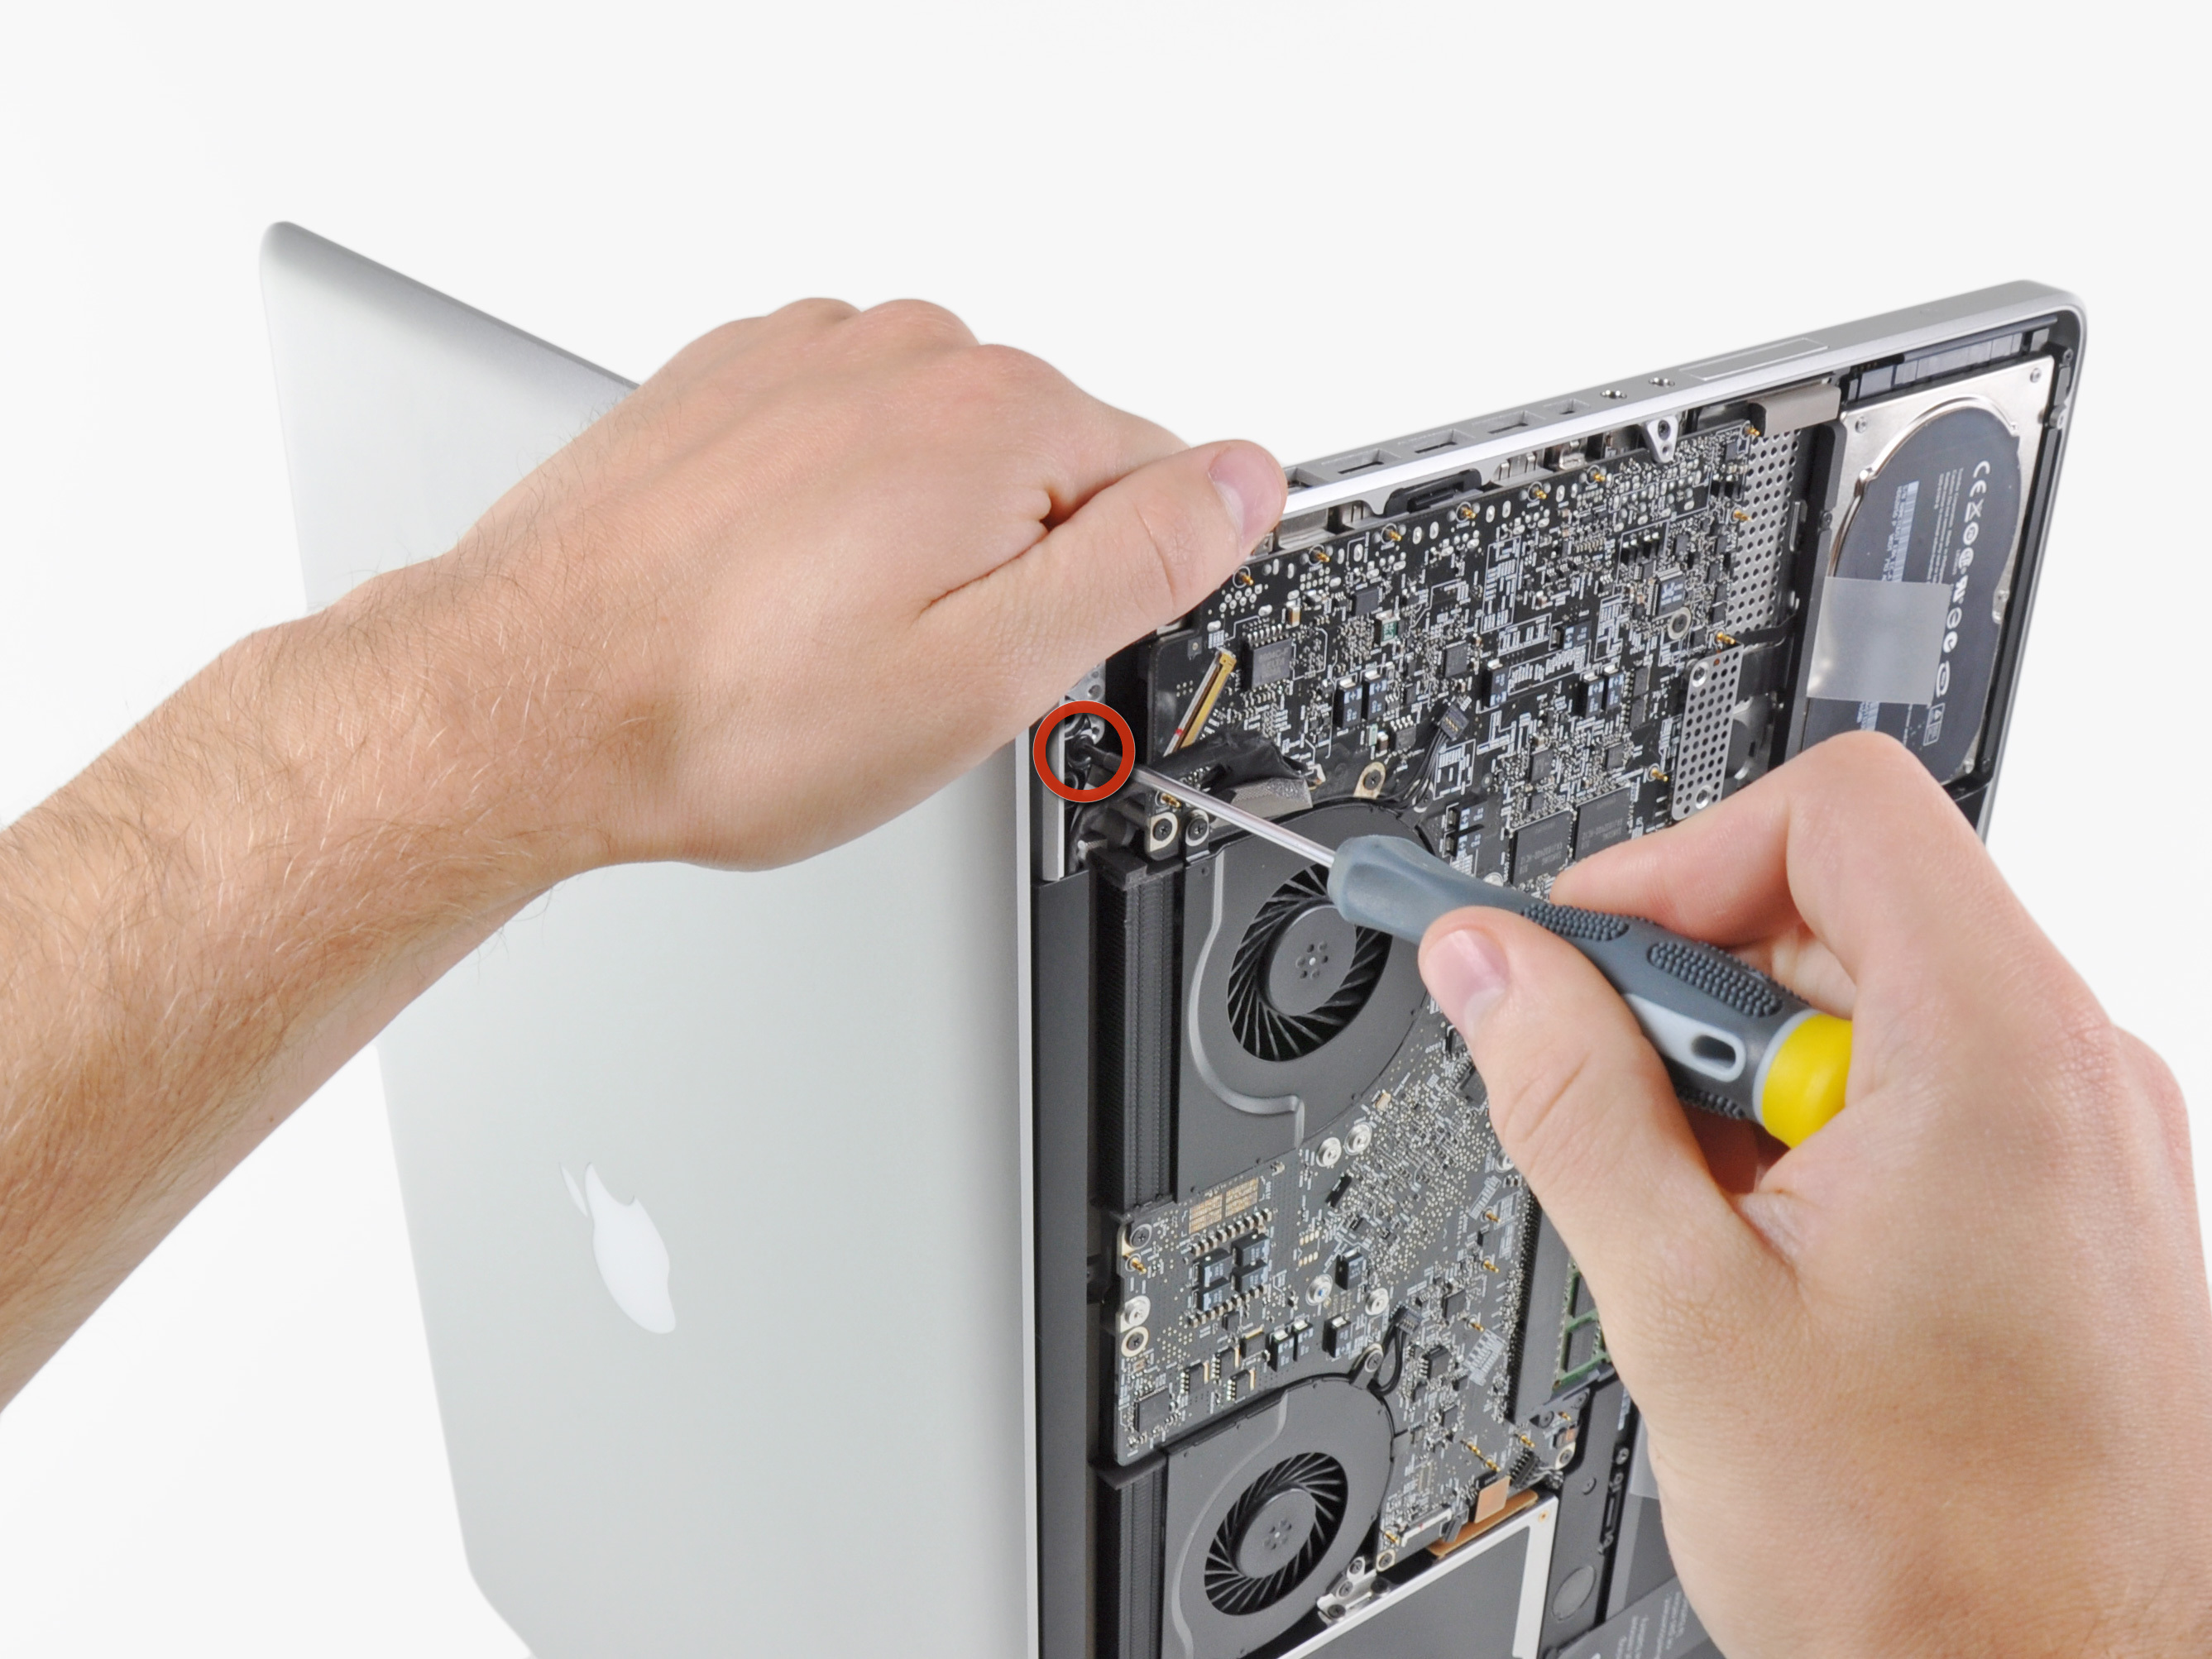 MacEmergency | Apple Mac Repair London | 08448 121 999